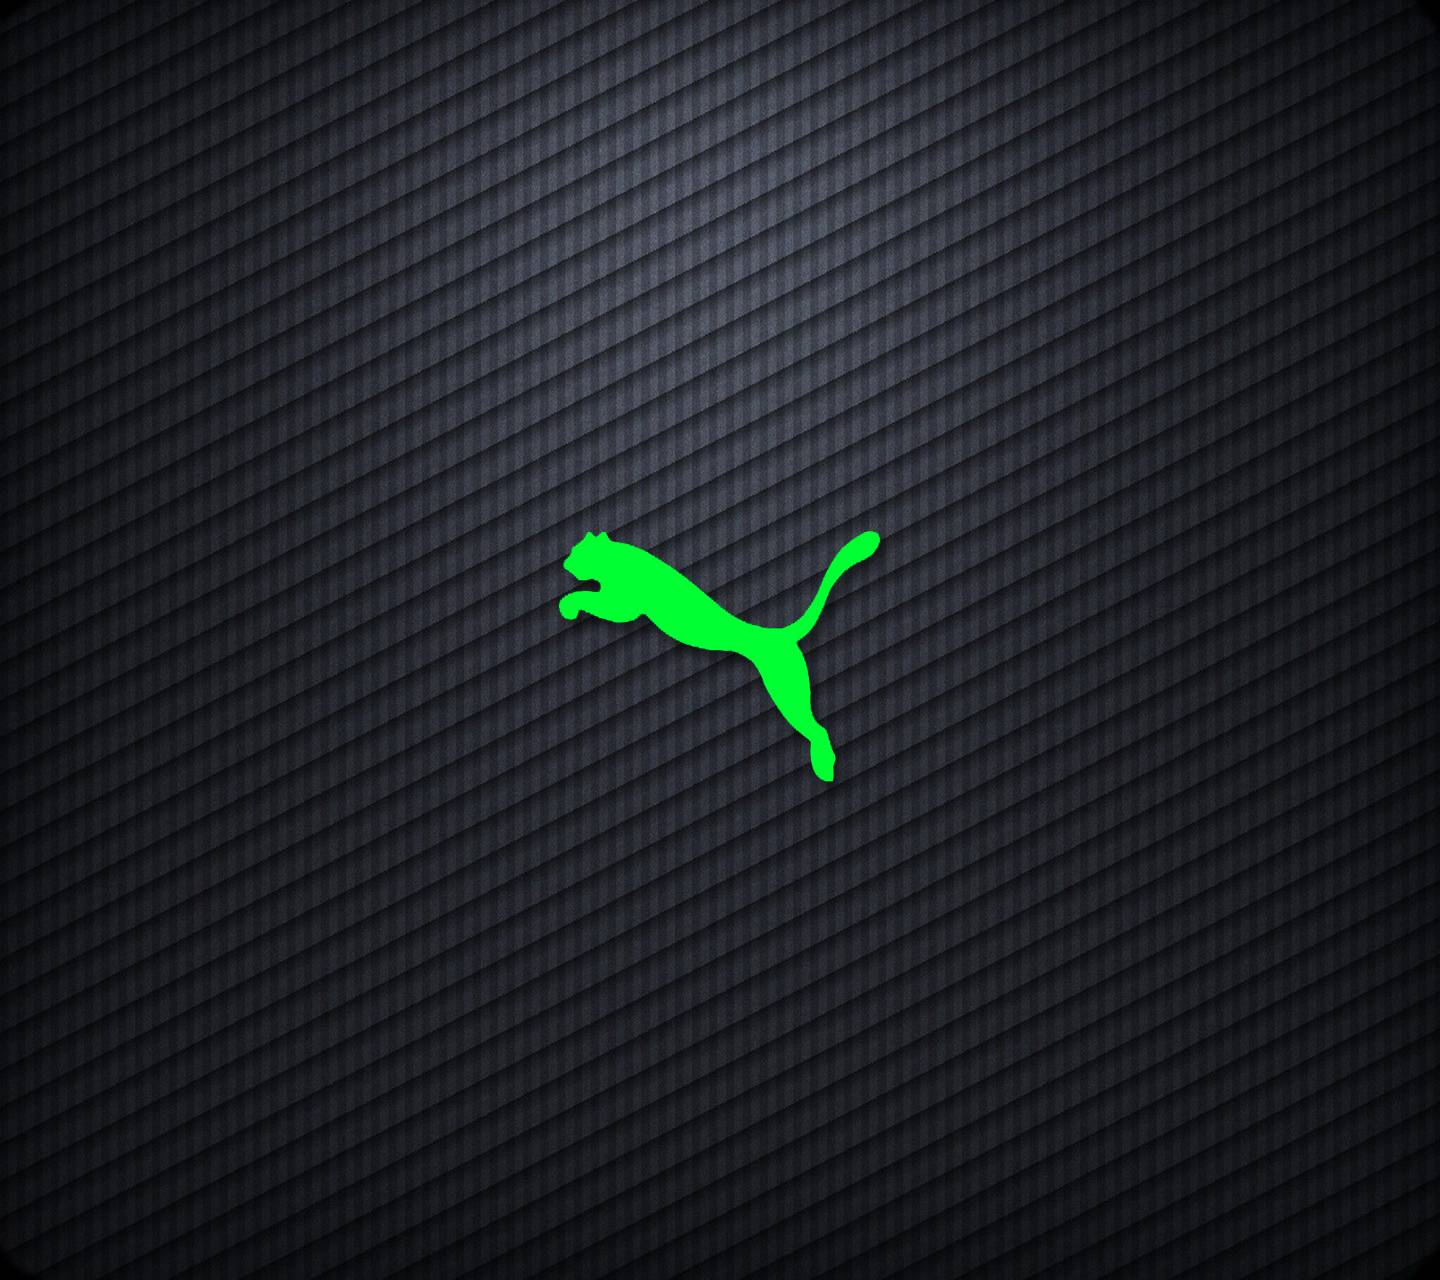 Green Puma Wallpaper by djbattery2012 - 7b - Free on ZEDGE™